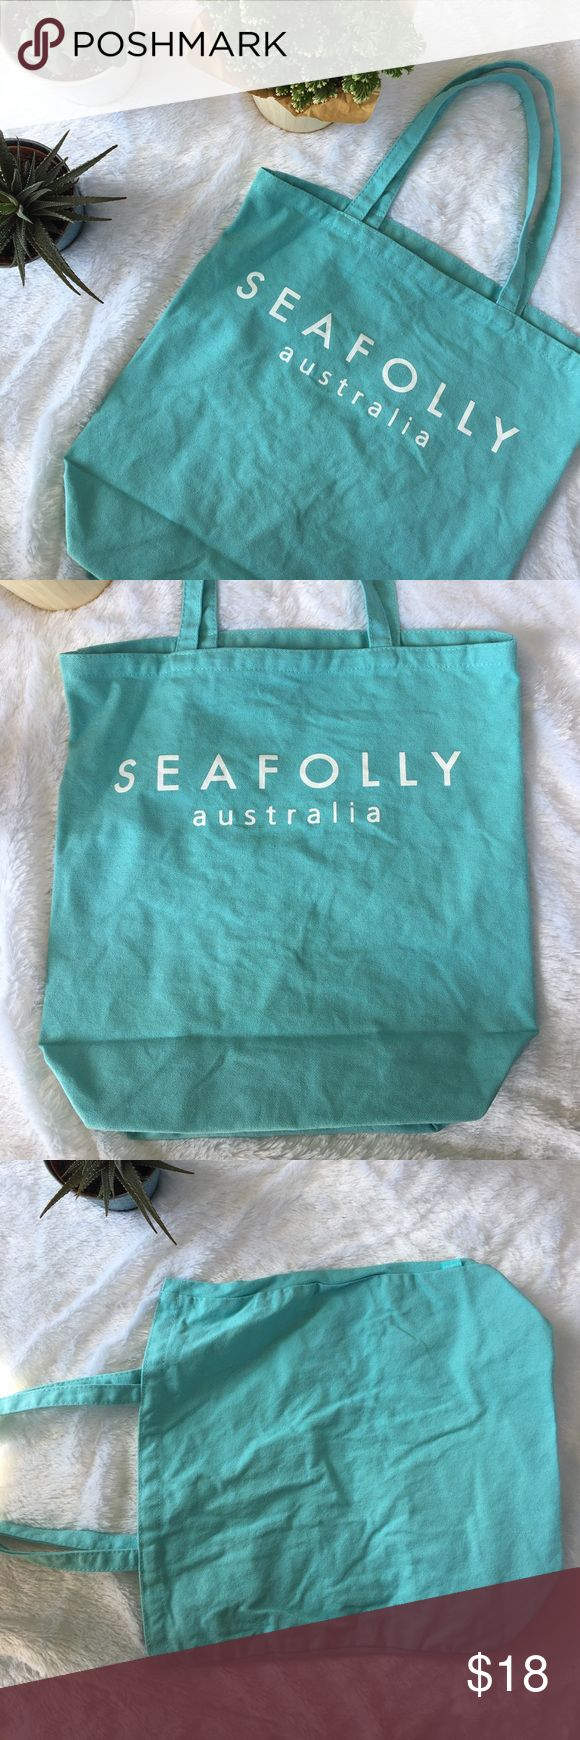 "Light Blue Canvas Tote Bag Cute blue and white tote bag! Front reads ""SEAFOLLY Australia"". Clean, no holes or stains. Only used on vacation once. Great for summer adventures, a book bag, or grocery trips! Bags Totes"